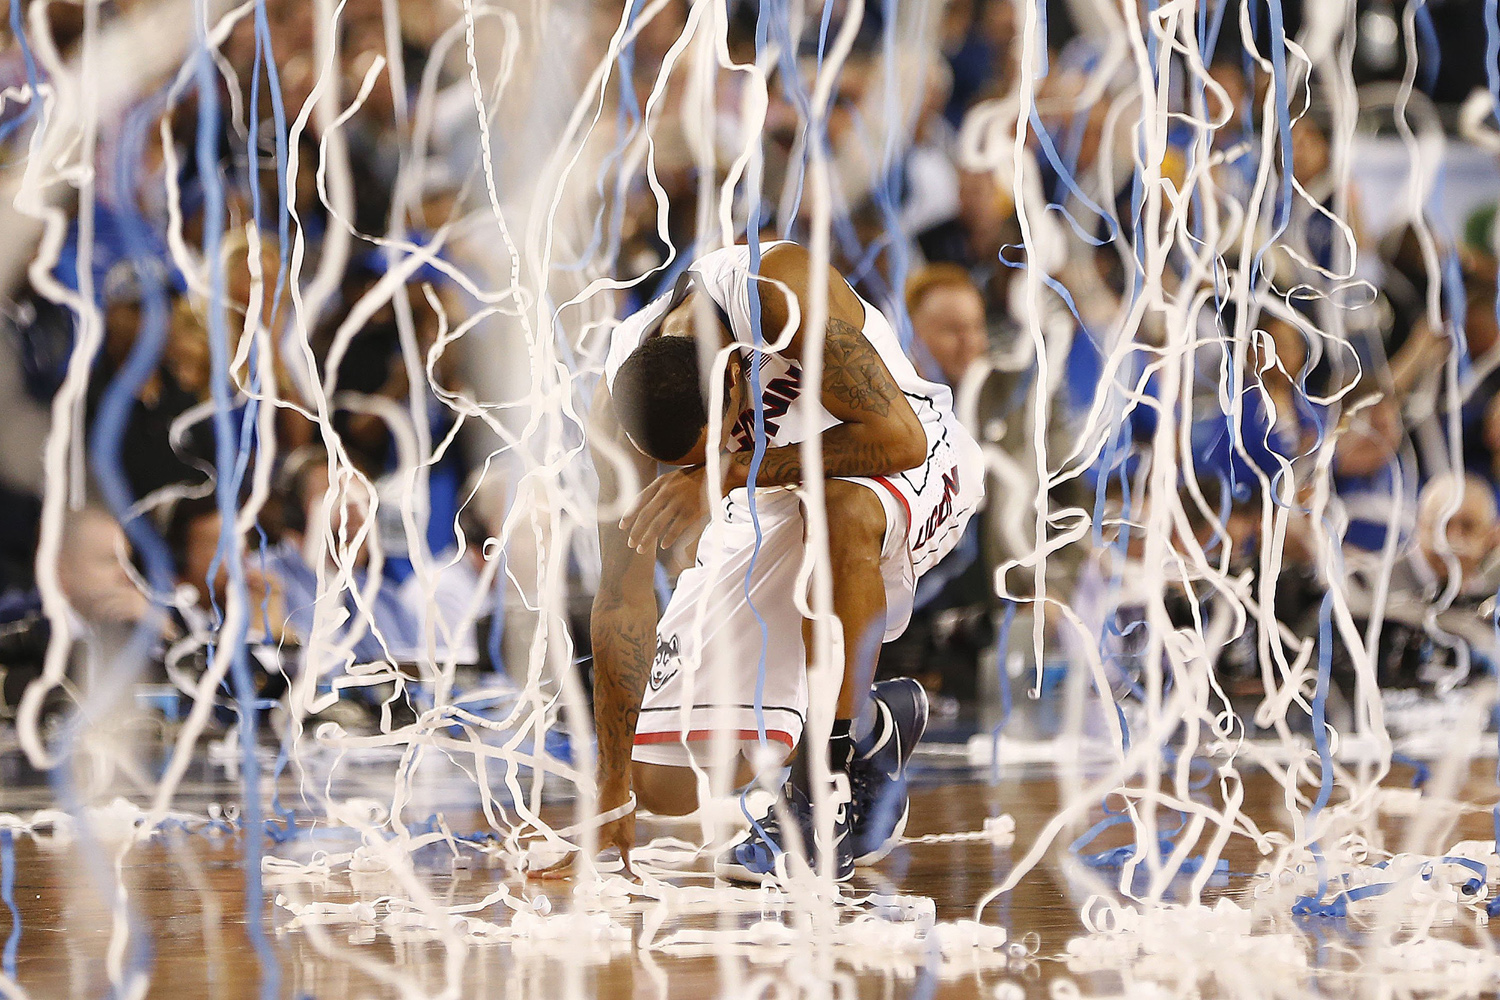 Apr. 7, 2014.  Connecticut Huskies guard Ryan Boatright  celebrates as the Connecticut Huskies beat the Kentucky Wildcats 60-54 in the NCAA Final Four championship game at AT&T Stadium in Arlington, Texas.